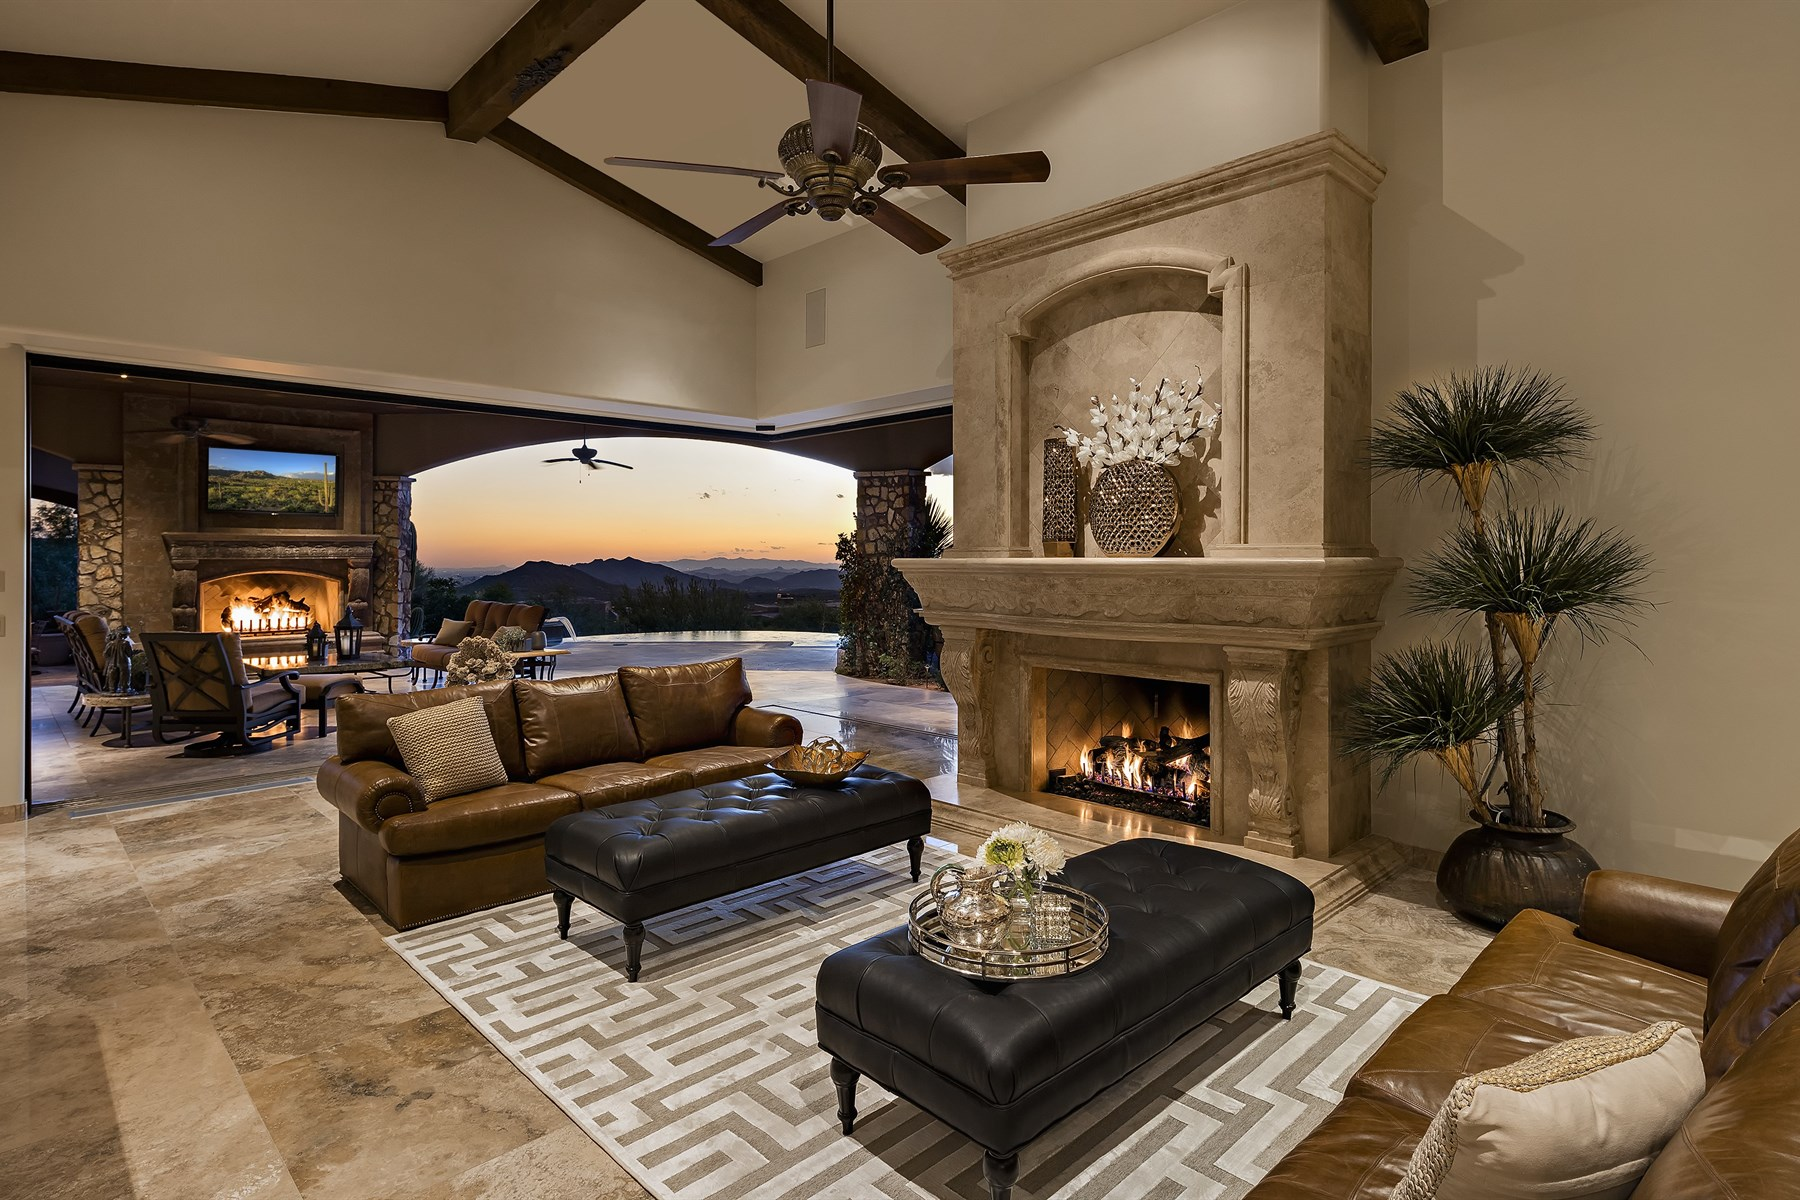 Moradia para Venda às Warmth and elegance greet you at the front door with putting green and waterfall 42145 N 111th Place Scottsdale, Arizona, 85262 Estados Unidos